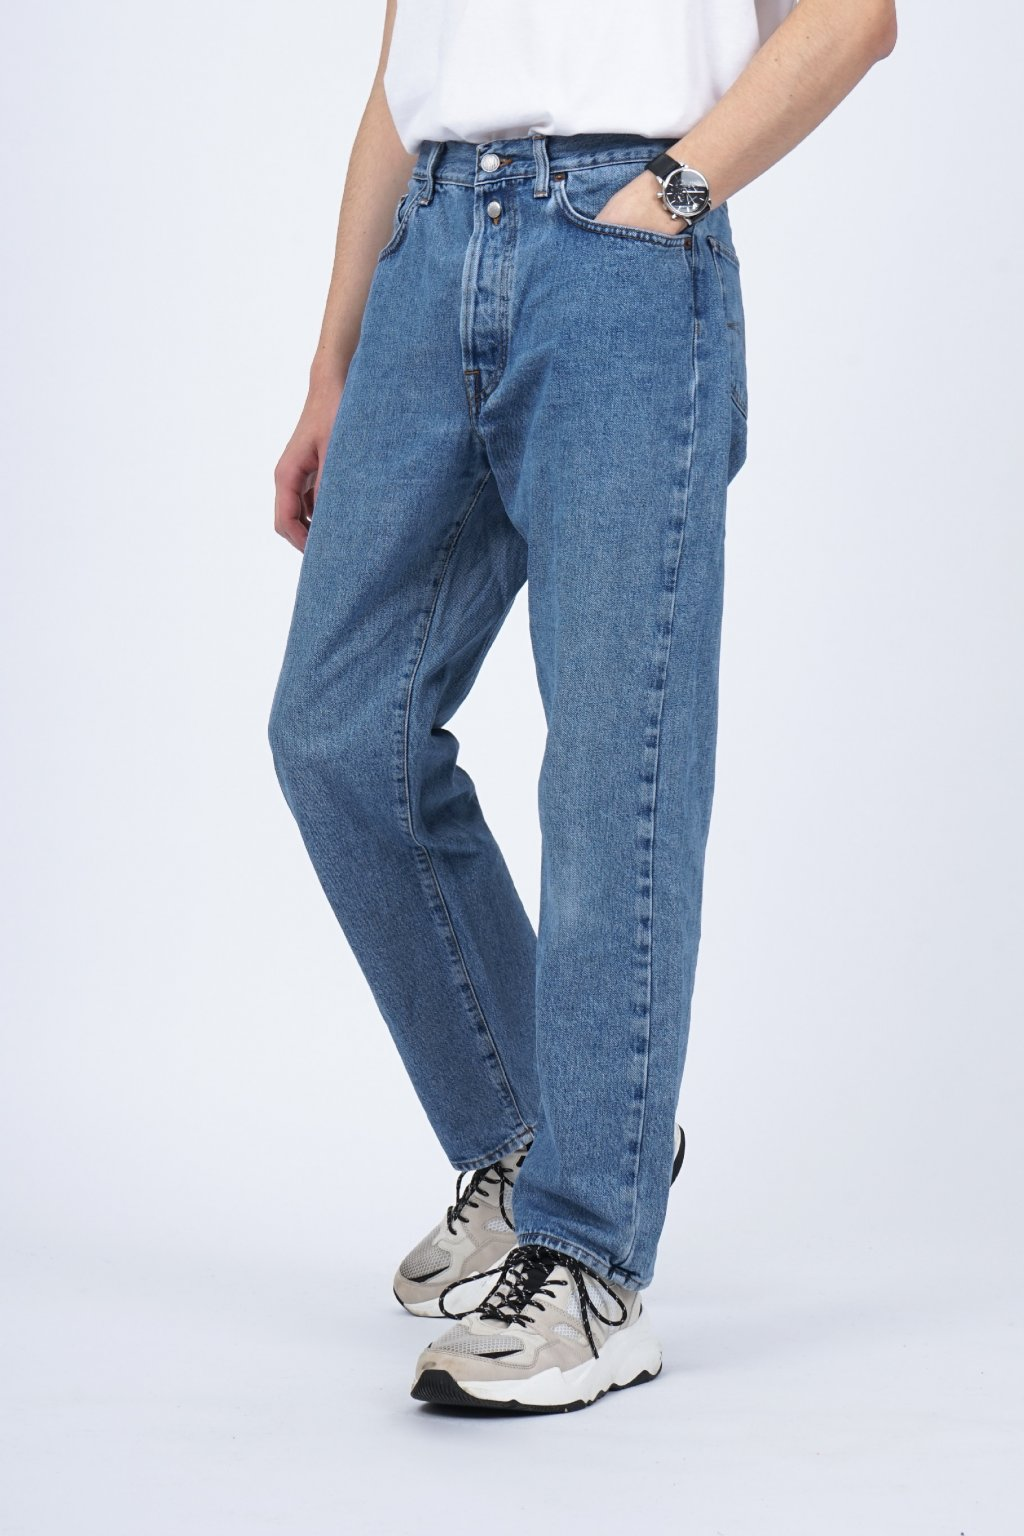 Replay jeans (33/30)